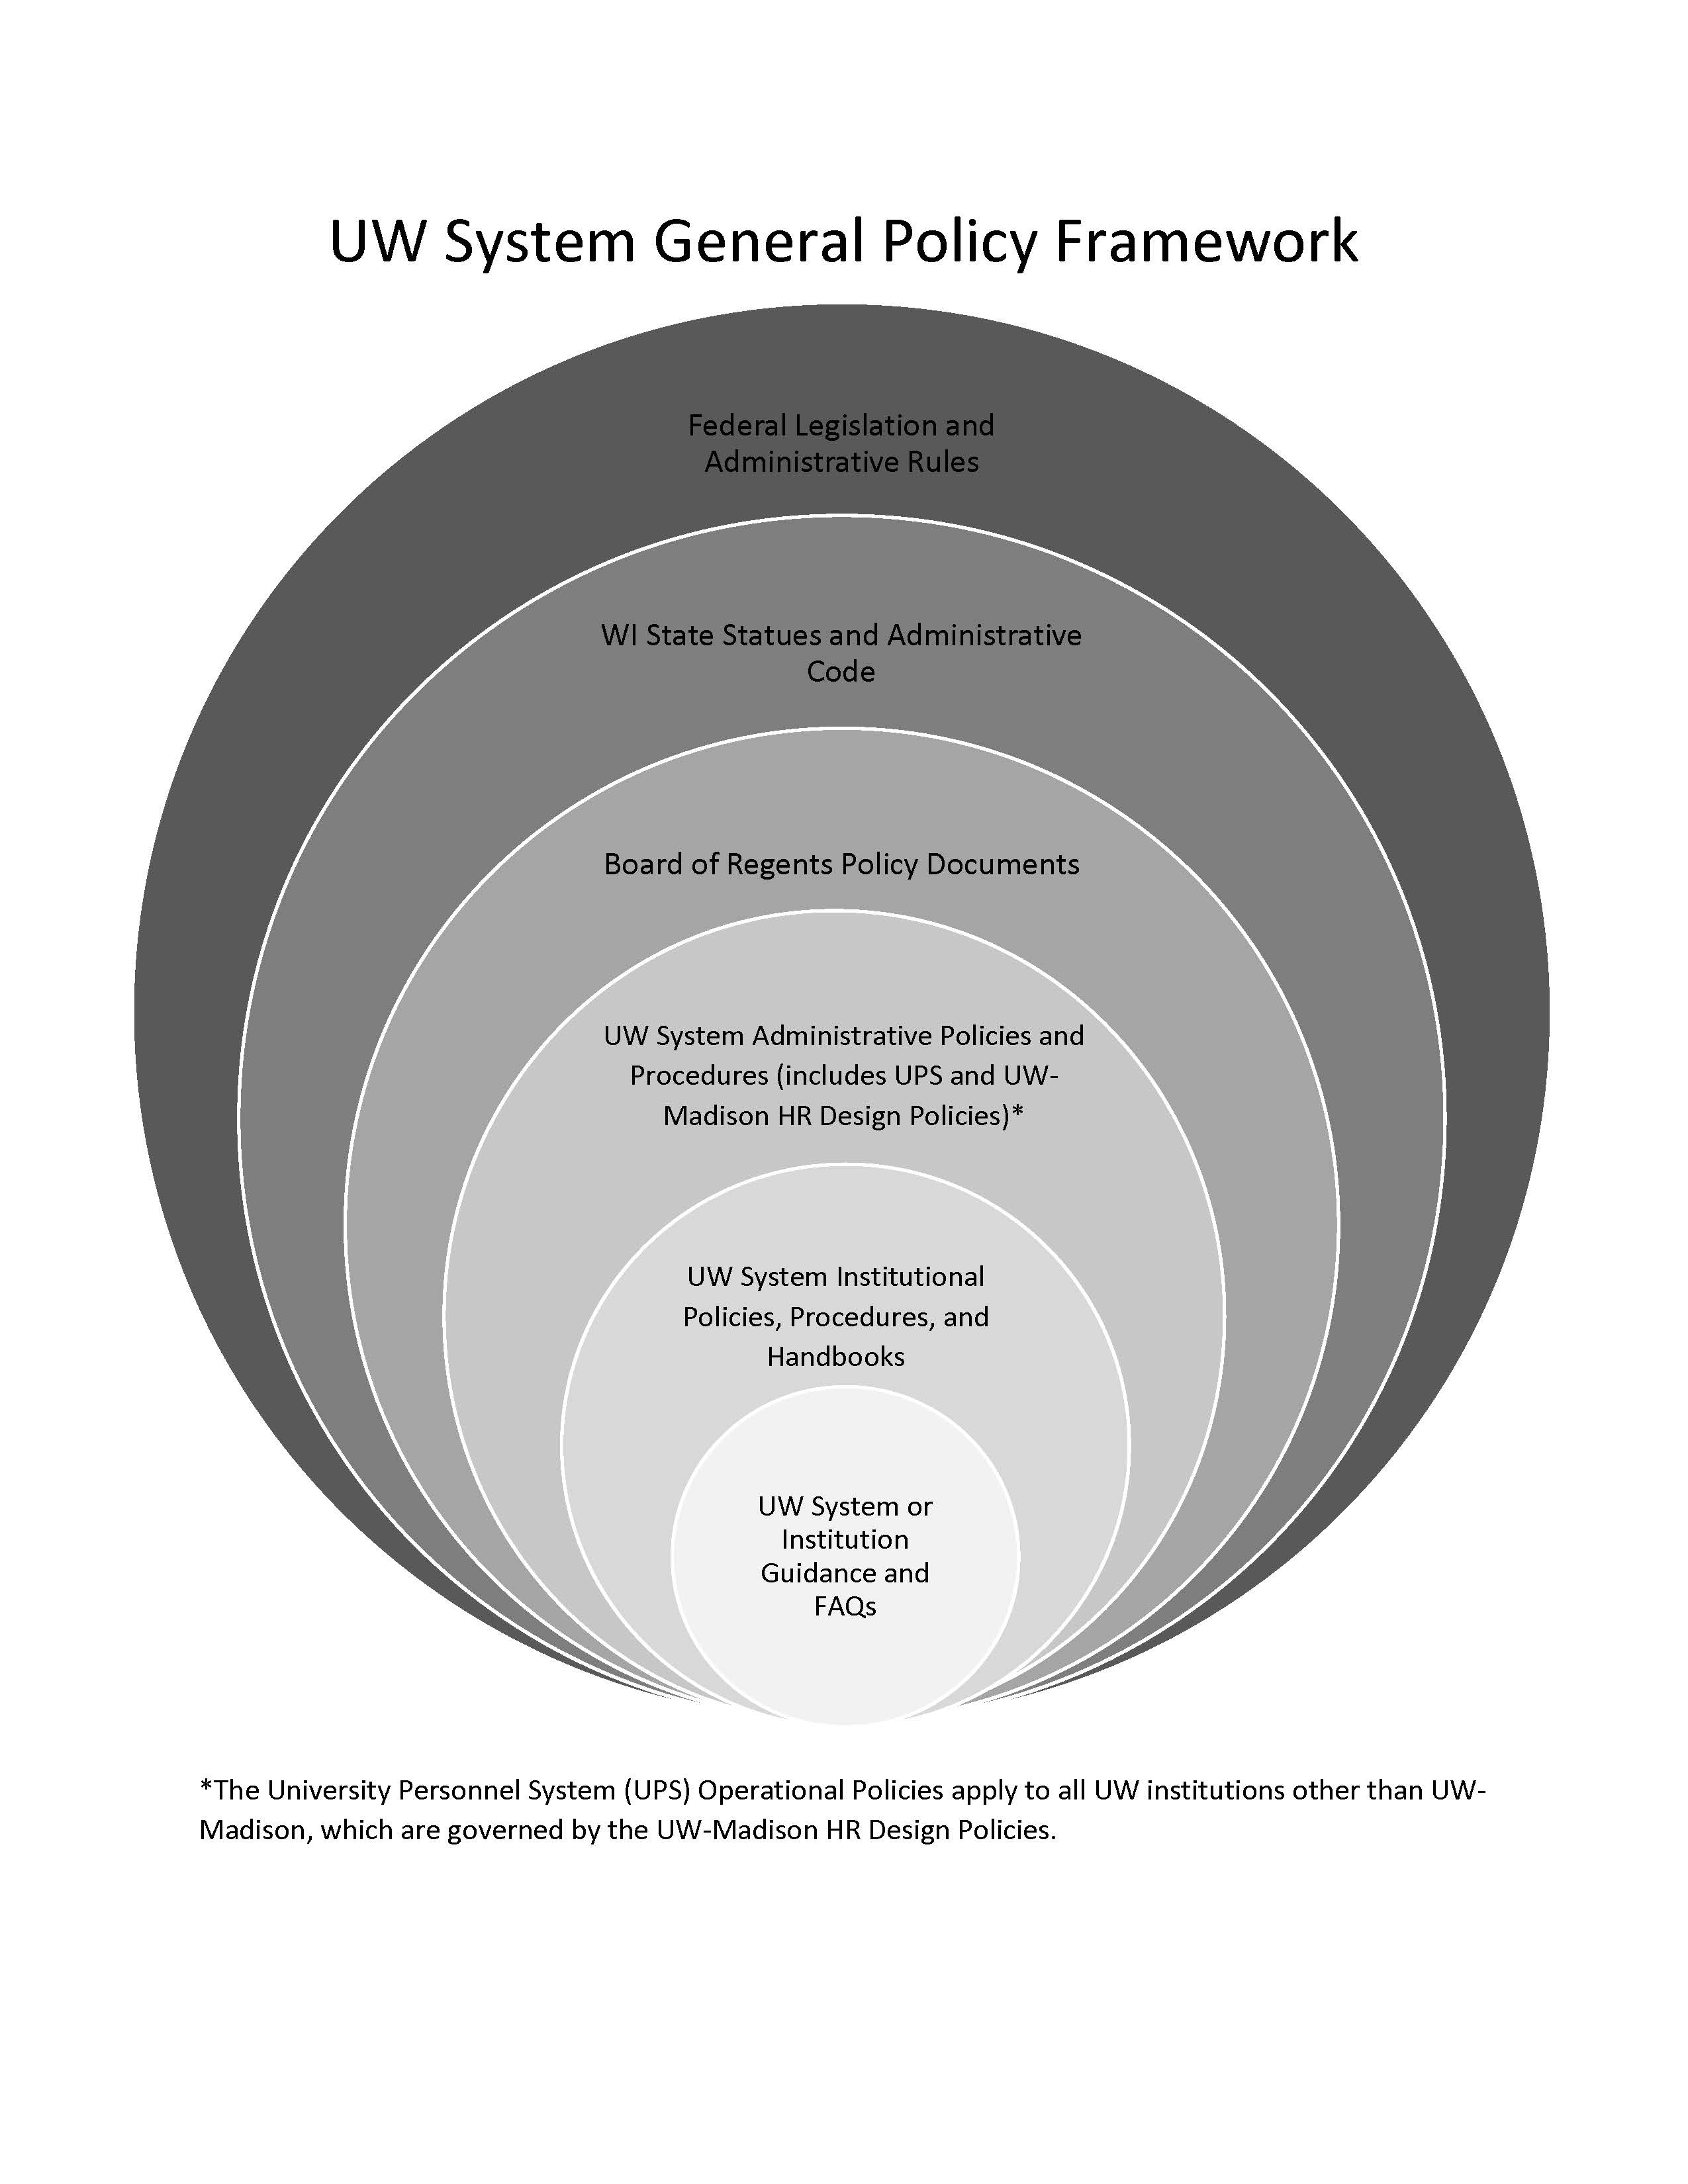 This image shows six concentric circles of different sizes that represent the policy framework in which University of Wisconsin System policies exist. Each tier of policy is represented by one of the six circles. The scope of the policies becomes smaller as you move from the outer circles towards the inner circles.  Federal Legislation and Administrative Rules occupy the largest, outermost circle because they have the broadest scope. Moving inward, the next circle contains Wisconsin State Statues and Administrative Code. The next tier is Board of Regents Policies. This is followed by UW System Administrative Policies and Procedures, including University Personnel System policies and UW-Madison HR Design Policies. This is followed by UW System Institutional Policies, Procedures, and Handbooks. UW System or Institution Guidance and FAQs occupy the smallest, innermost circle.